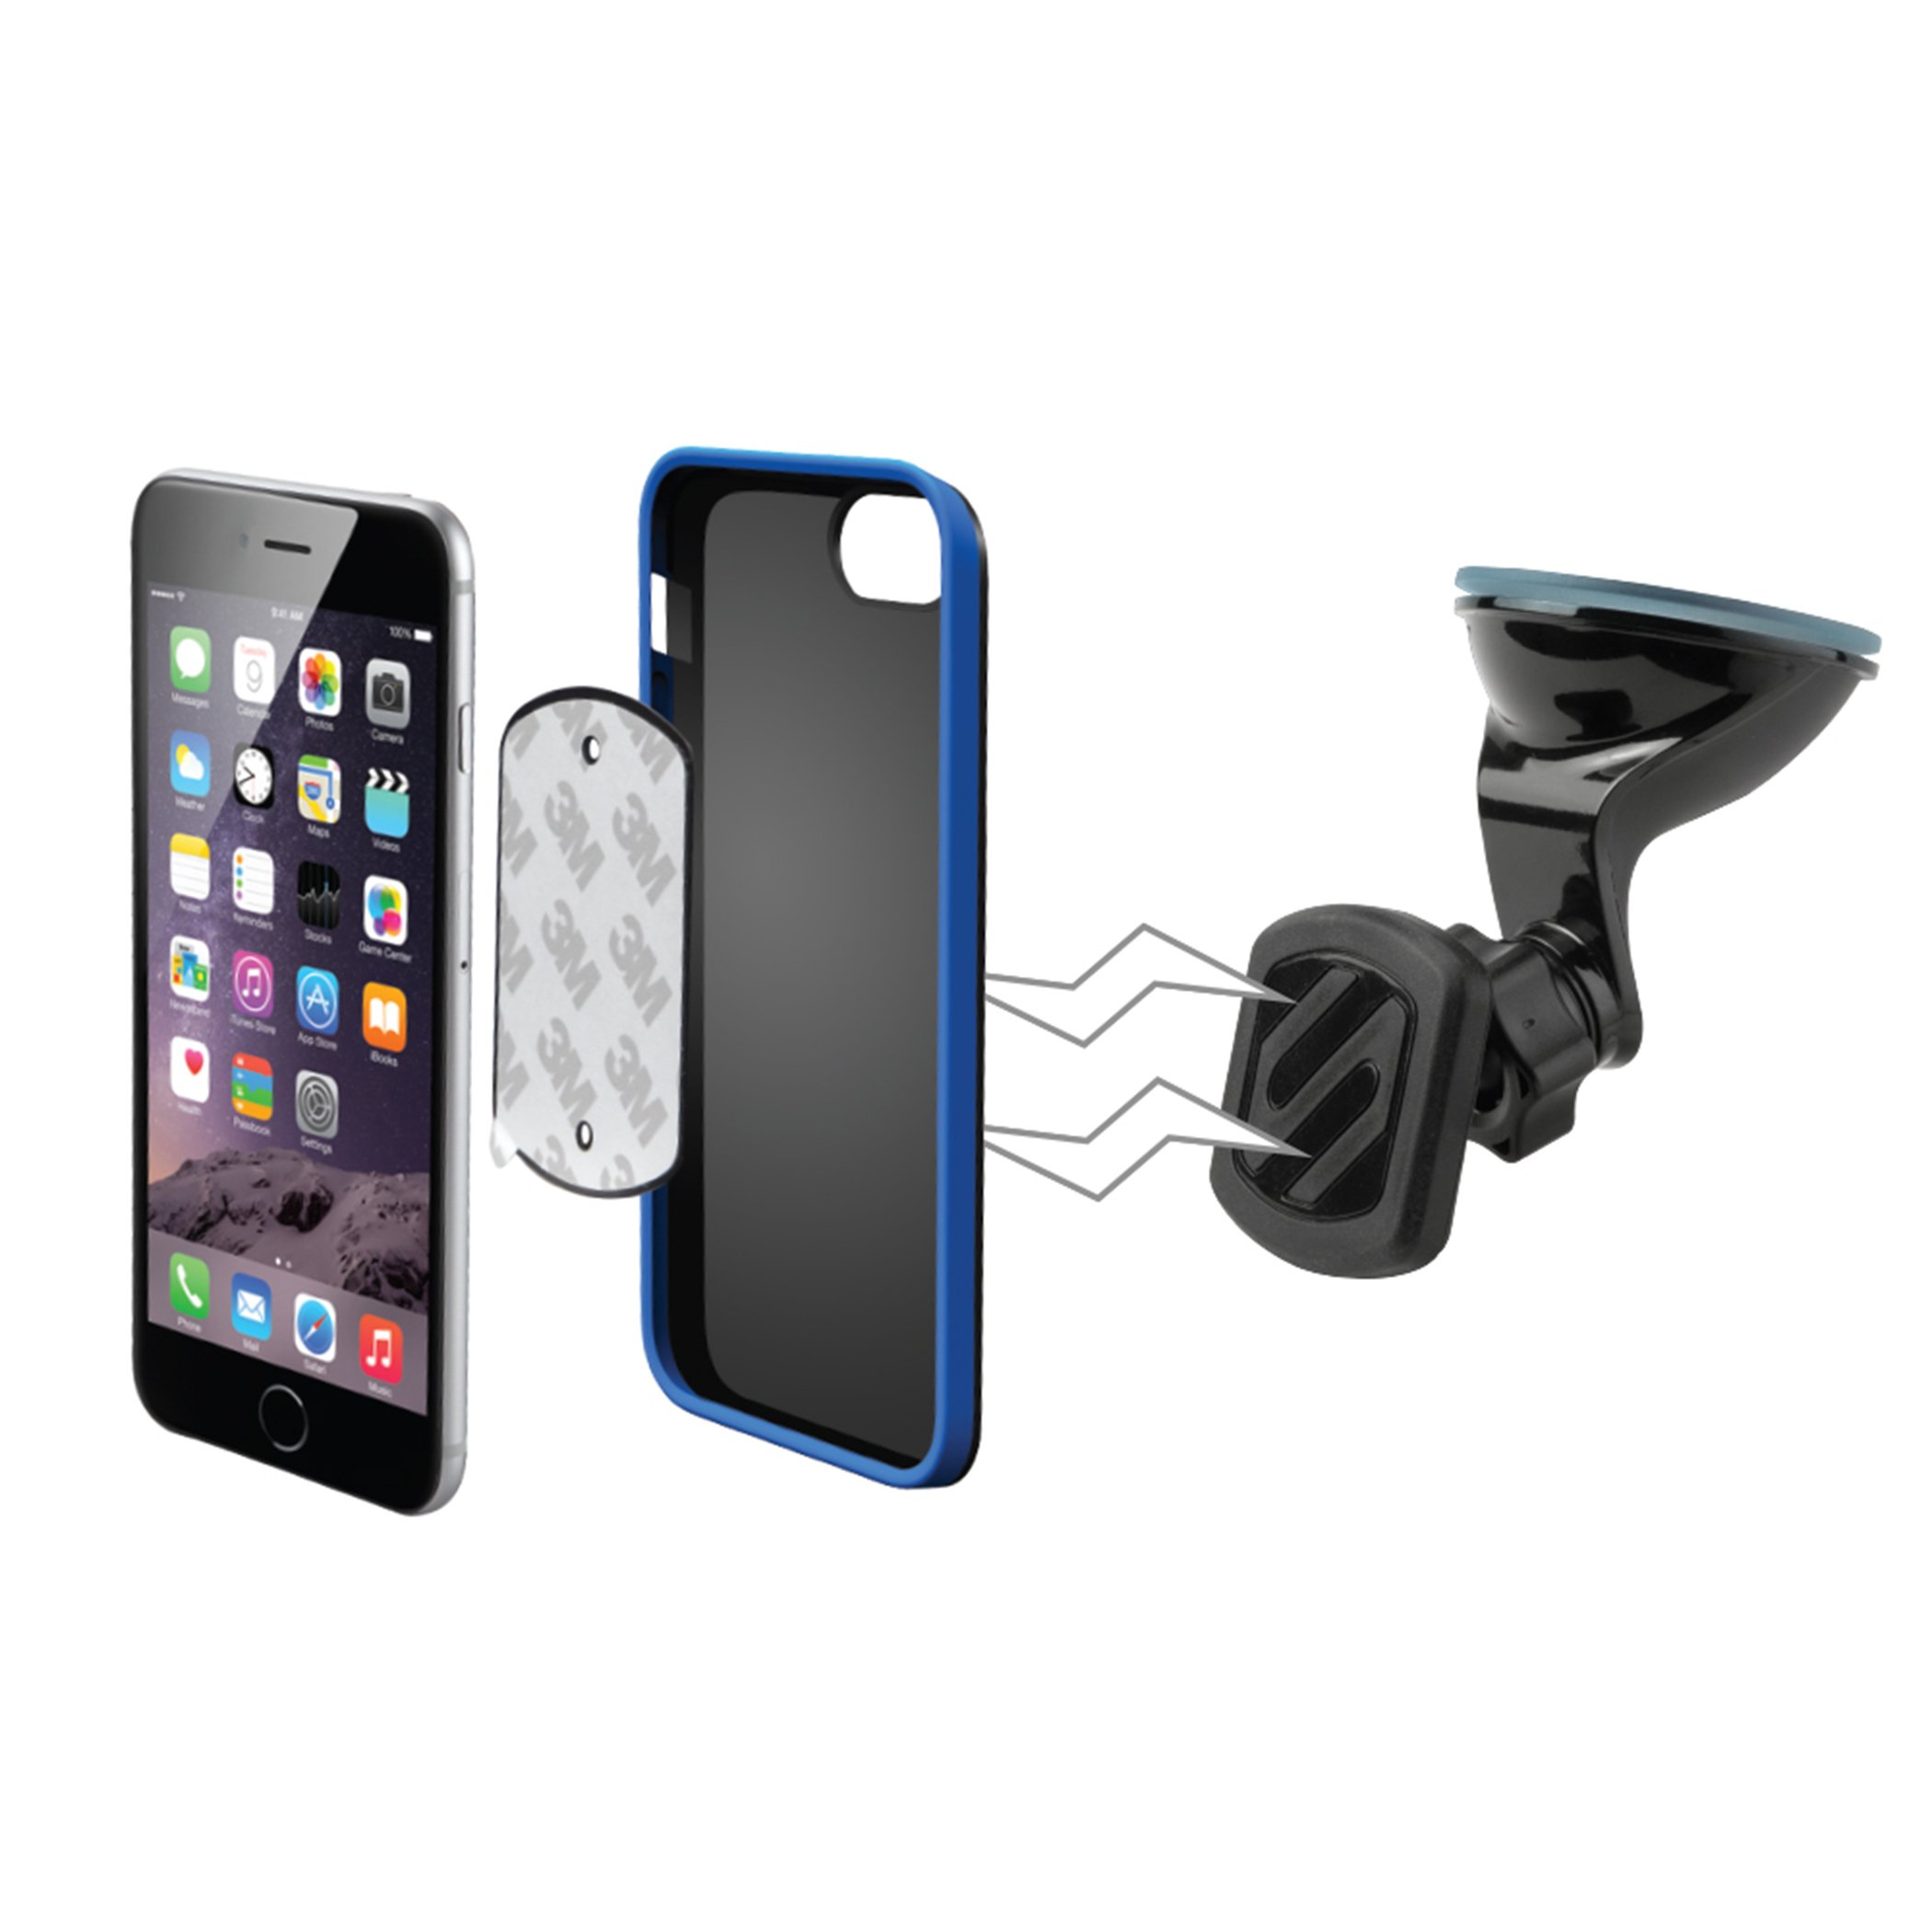 SCOSCHE MAGWSM2 MagicMount Universal Magnetic Phone/GPS Suction Cup Mount for the Car, Home or Office by Scosche (Image #6)